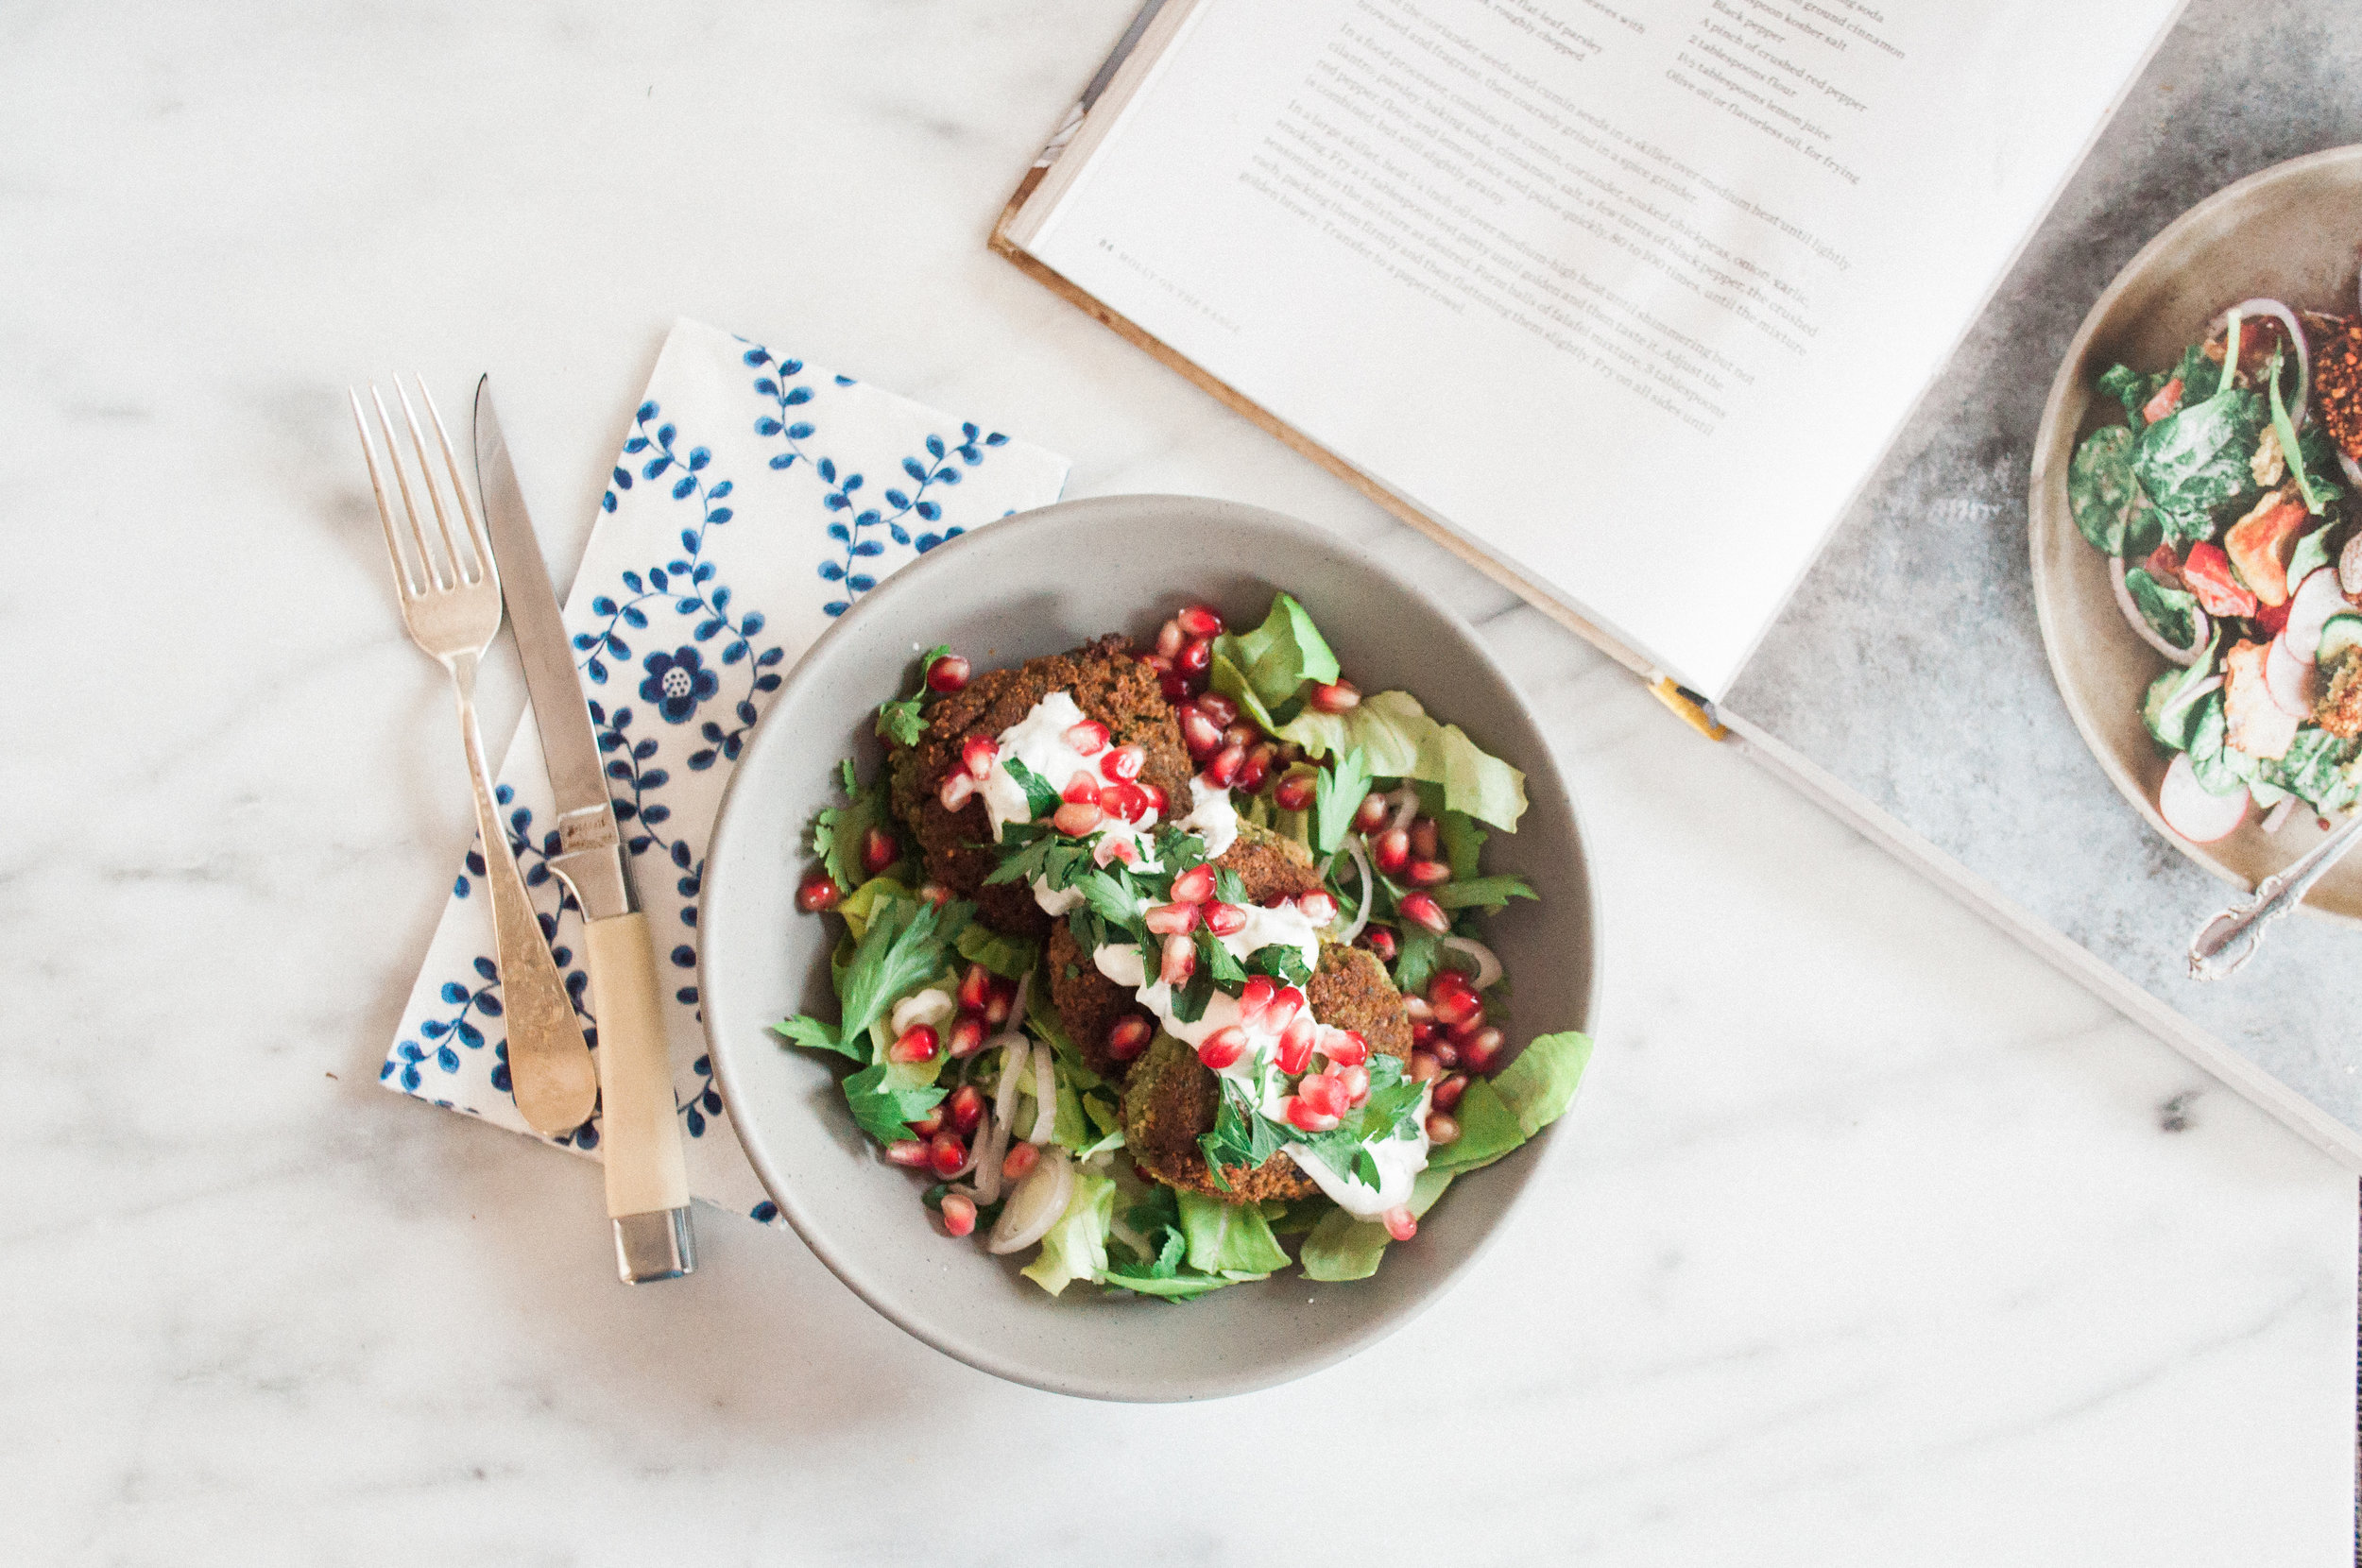 Molly Yeh Falafel Recipe | Molly on the Range Cookbook Review